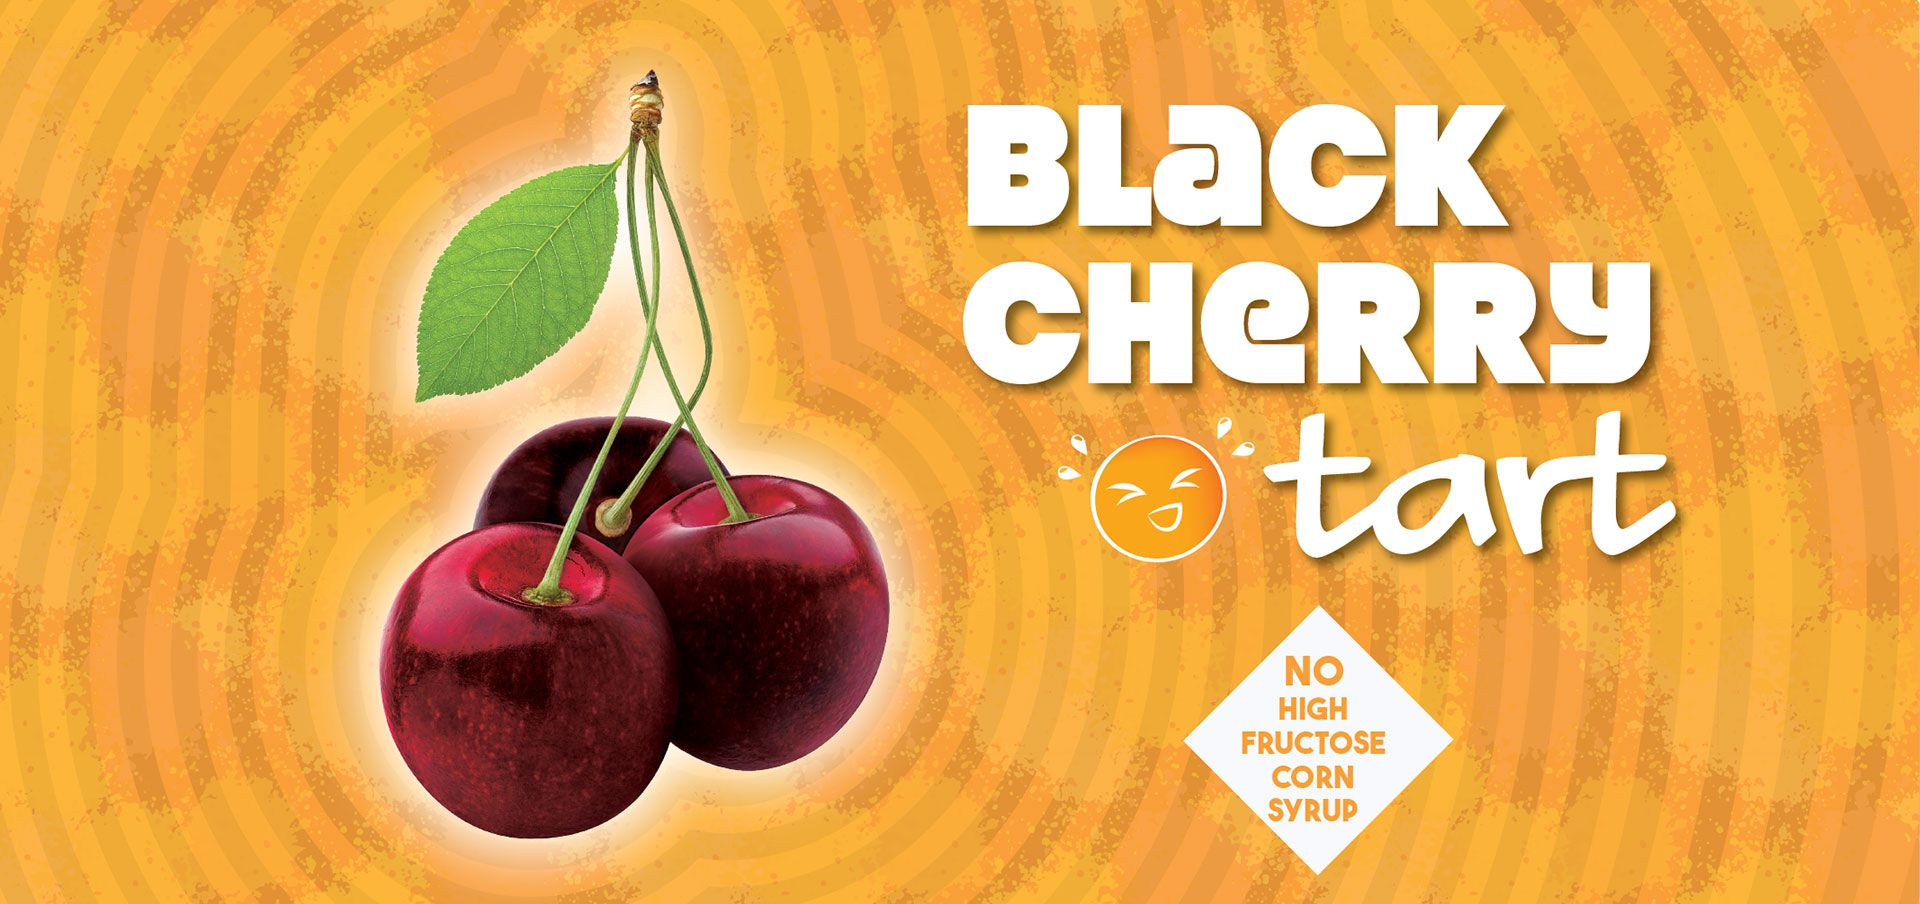 black cherry tart label image